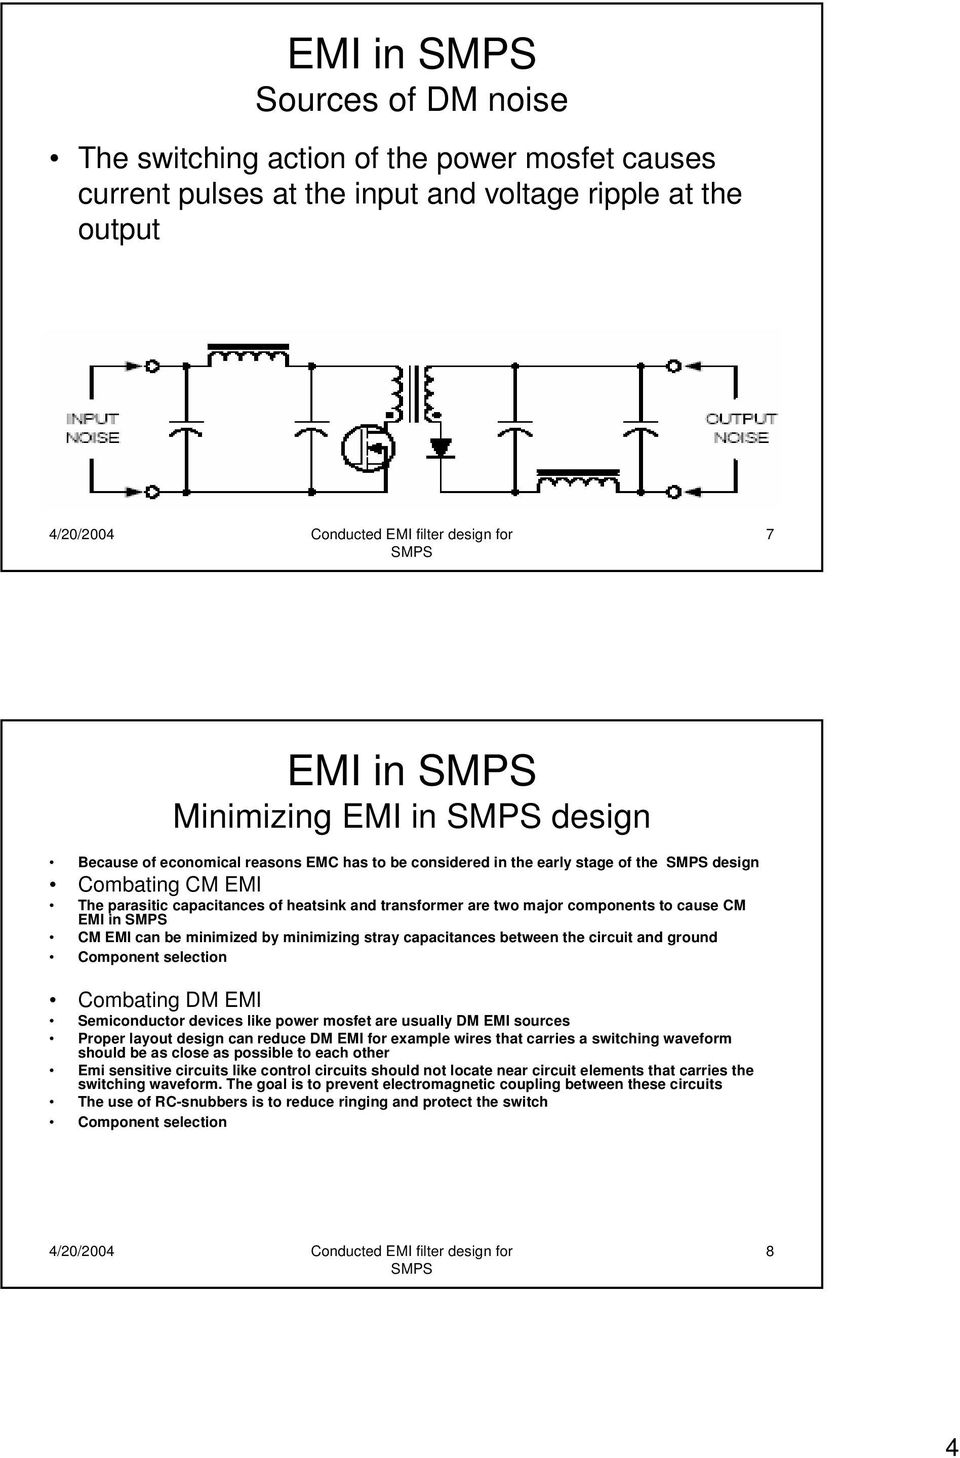 Conducted Emi Filter Design For Smps Pdf Noise Circuit By Minimizing Stray Capacitances Between The And Ground Component Selection Combating Dm Semiconductor Devices